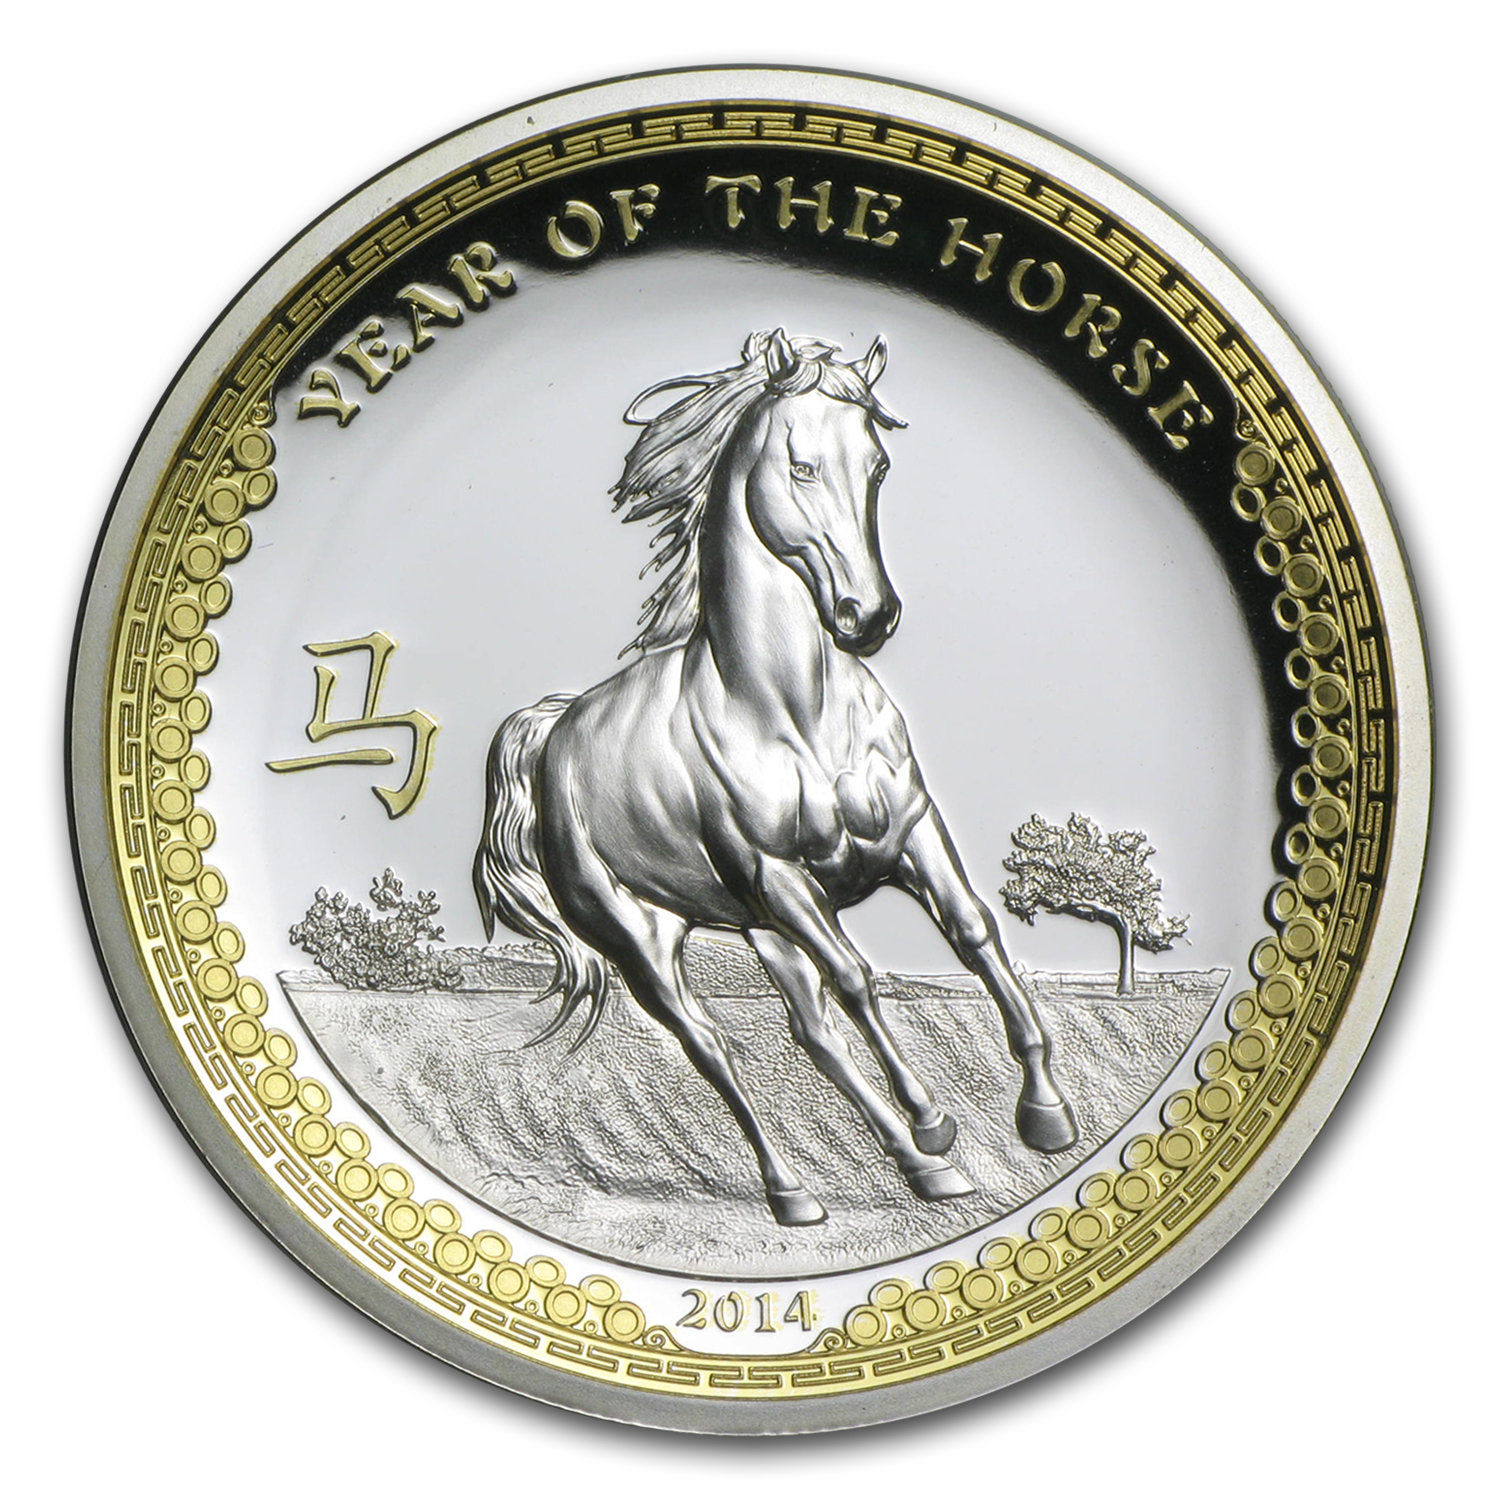 2014 Palau 1 oz Silver $5 Year of the Horse High Relief